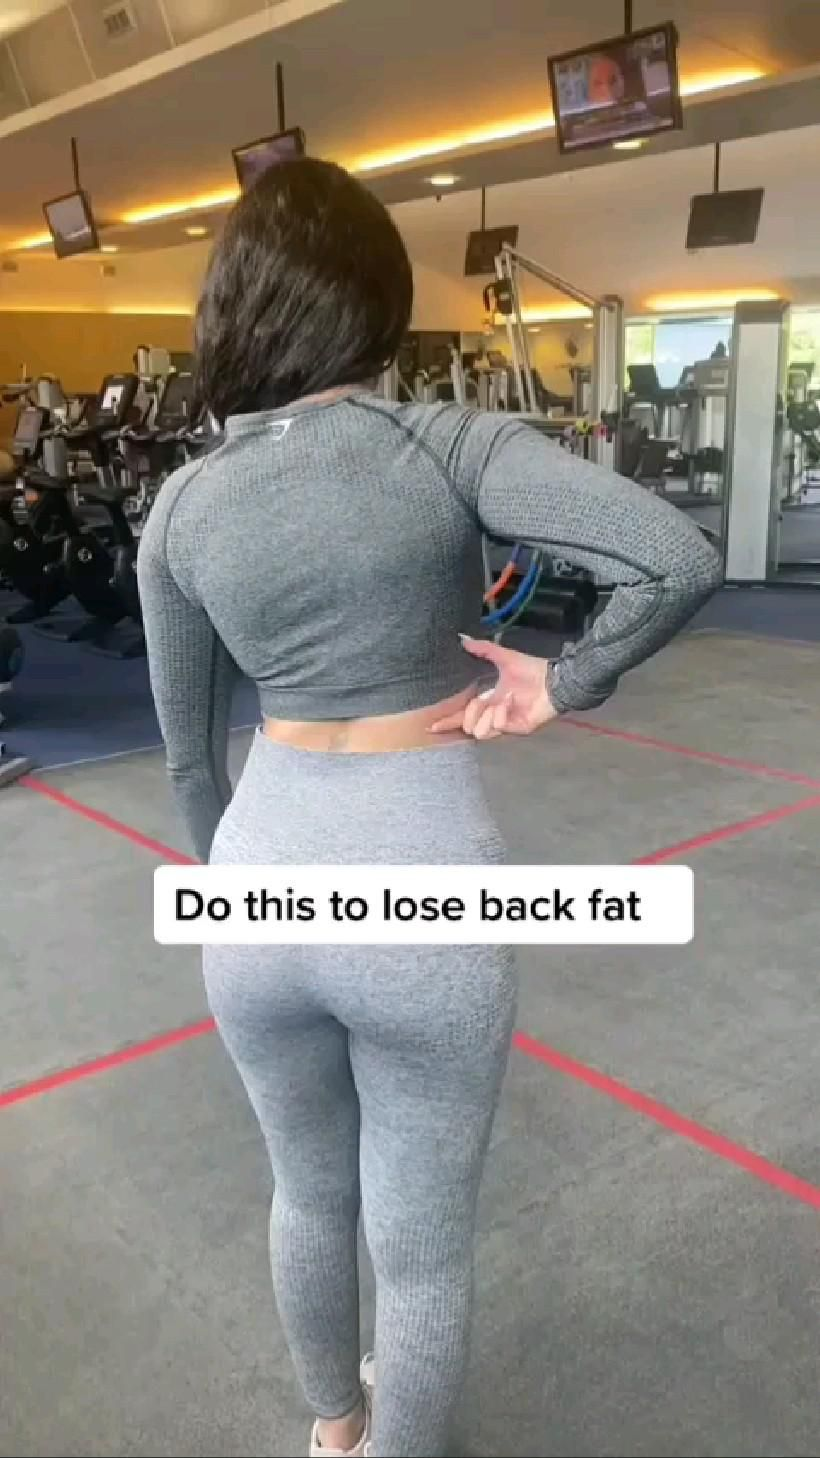 Lose Back Fat: Weight Loss - Health & Fitness